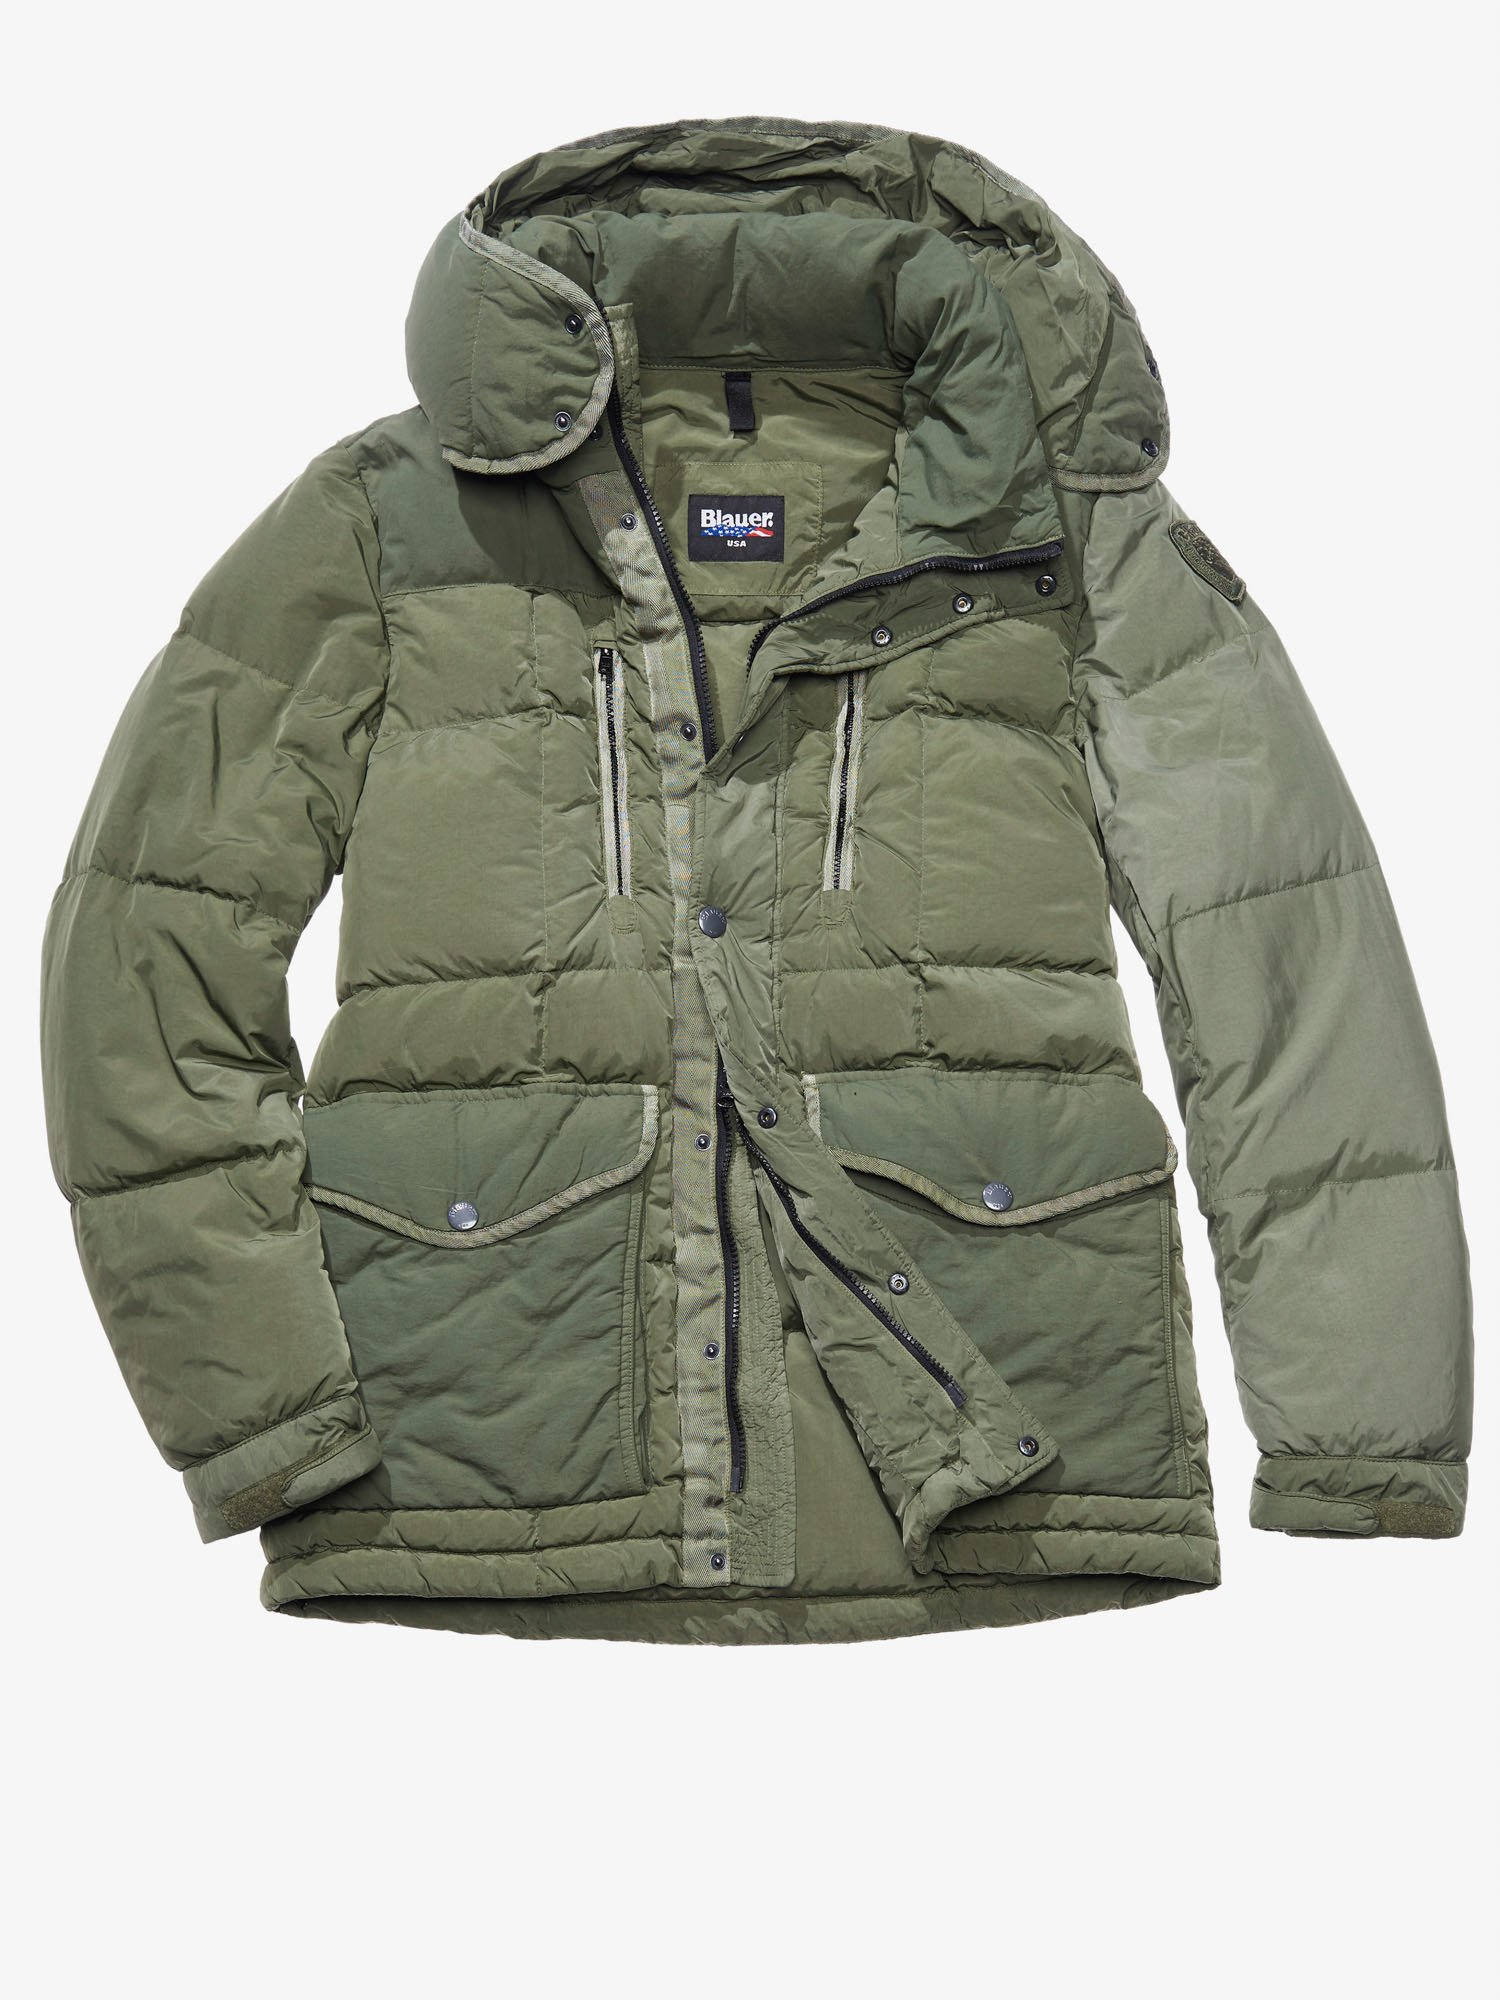 Blauer - FRANCESCO MILITARY-STYLE DOWN COAT - Kombu Algae - Blauer